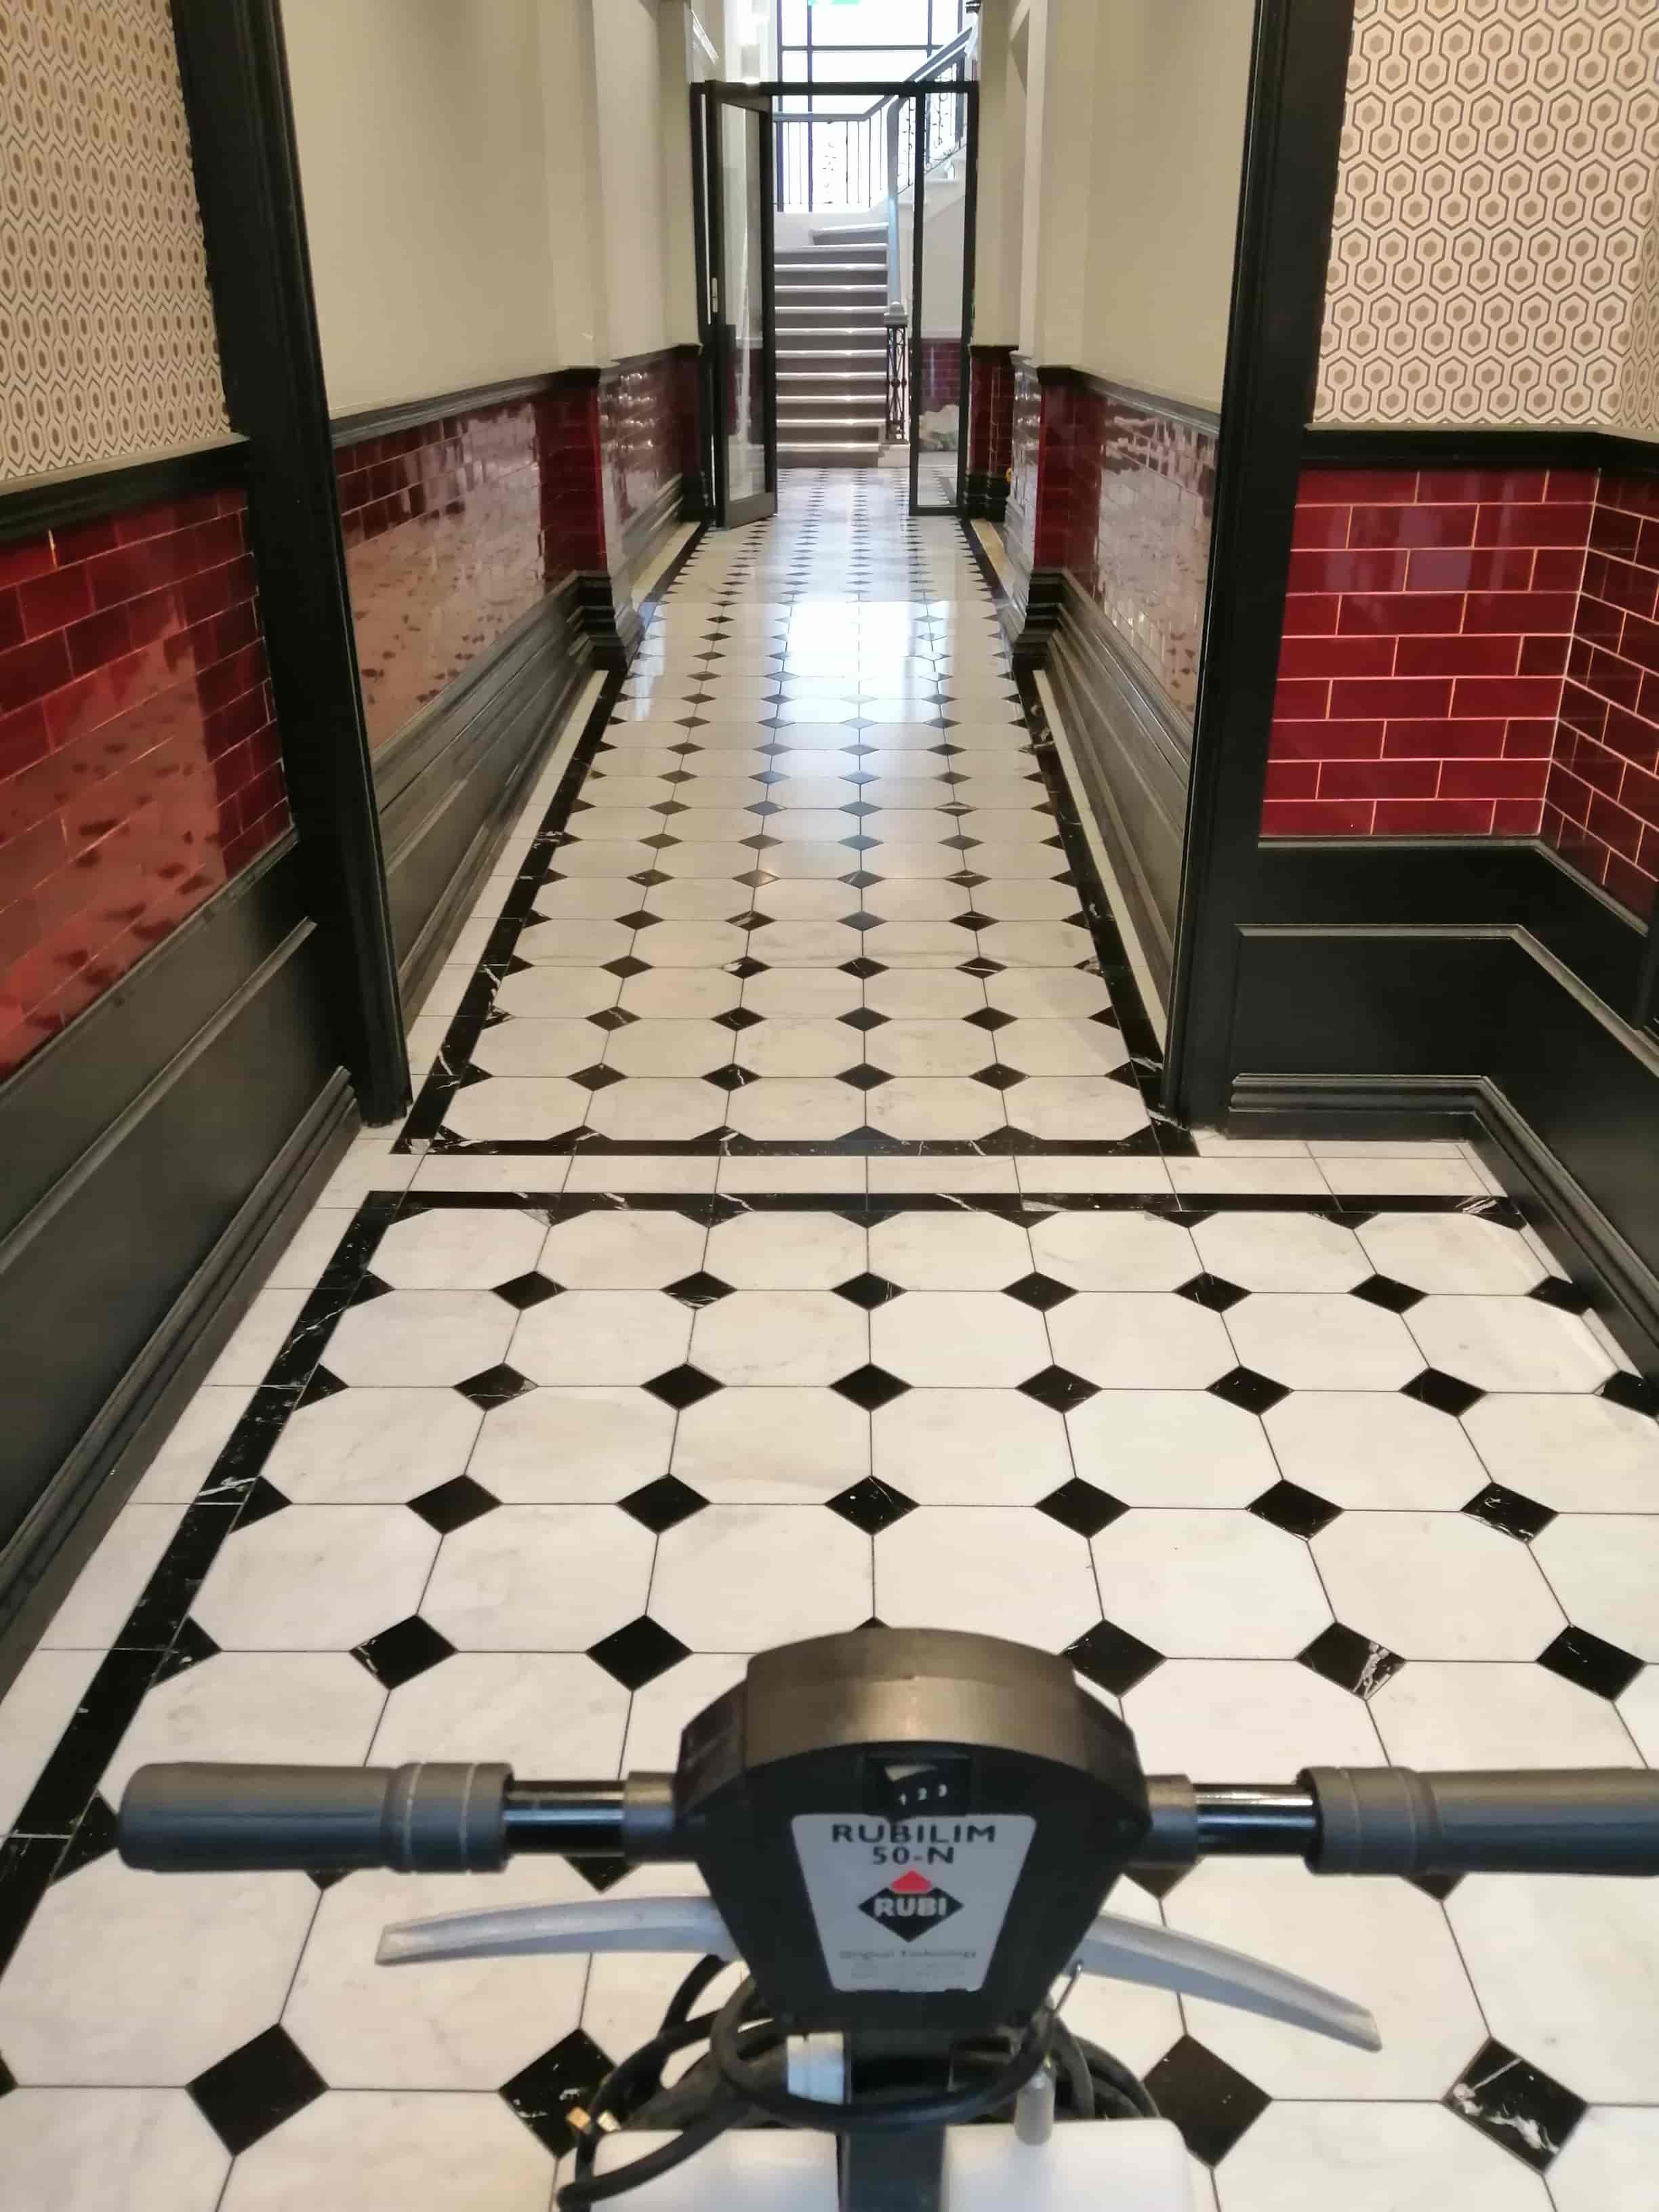 White Mable Hallway After Polishing Cardiff Bay Listed Building